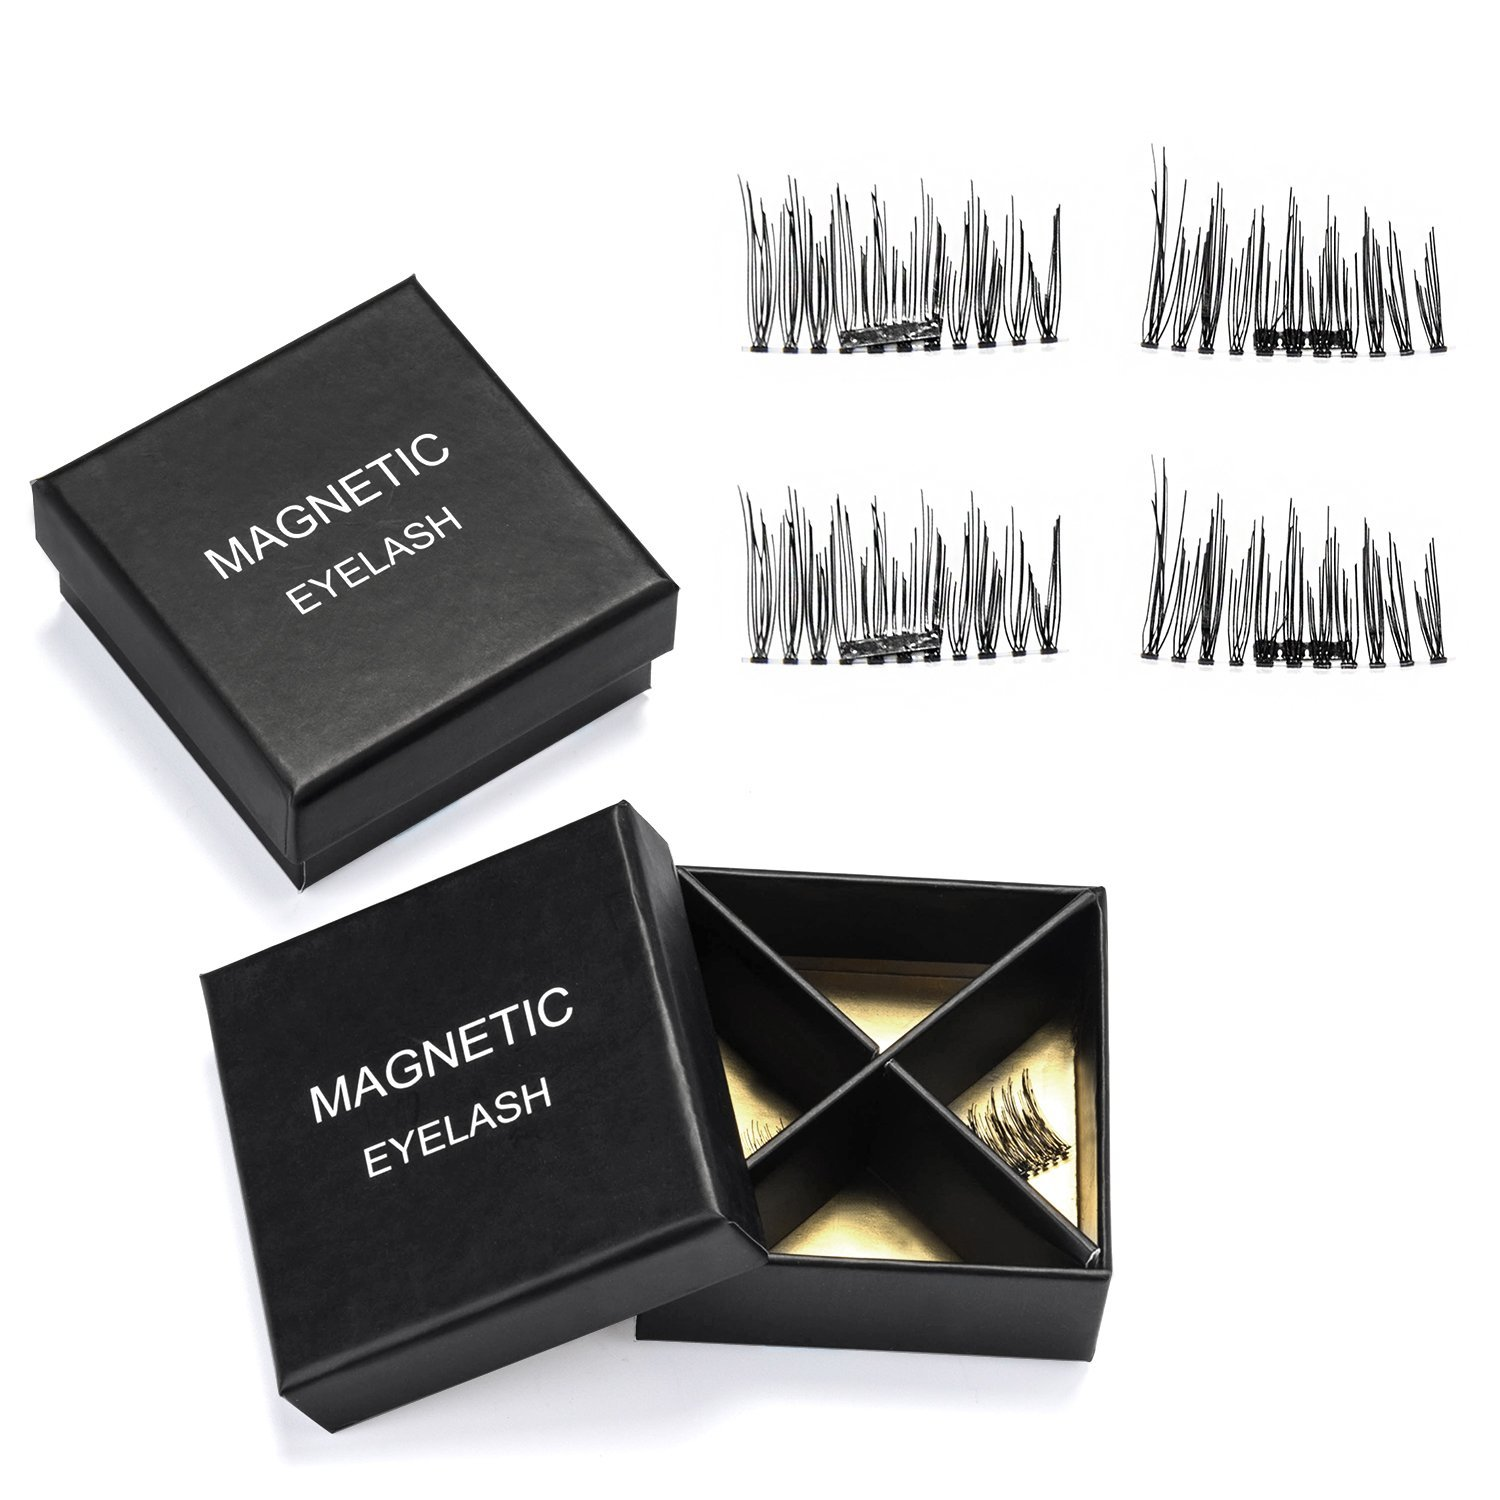 Fitnate Magnetic Eyelashes 3D Reusable False Magnet Eye Lashes Extensions 2 Pairs, 1 Set (BT0110A)